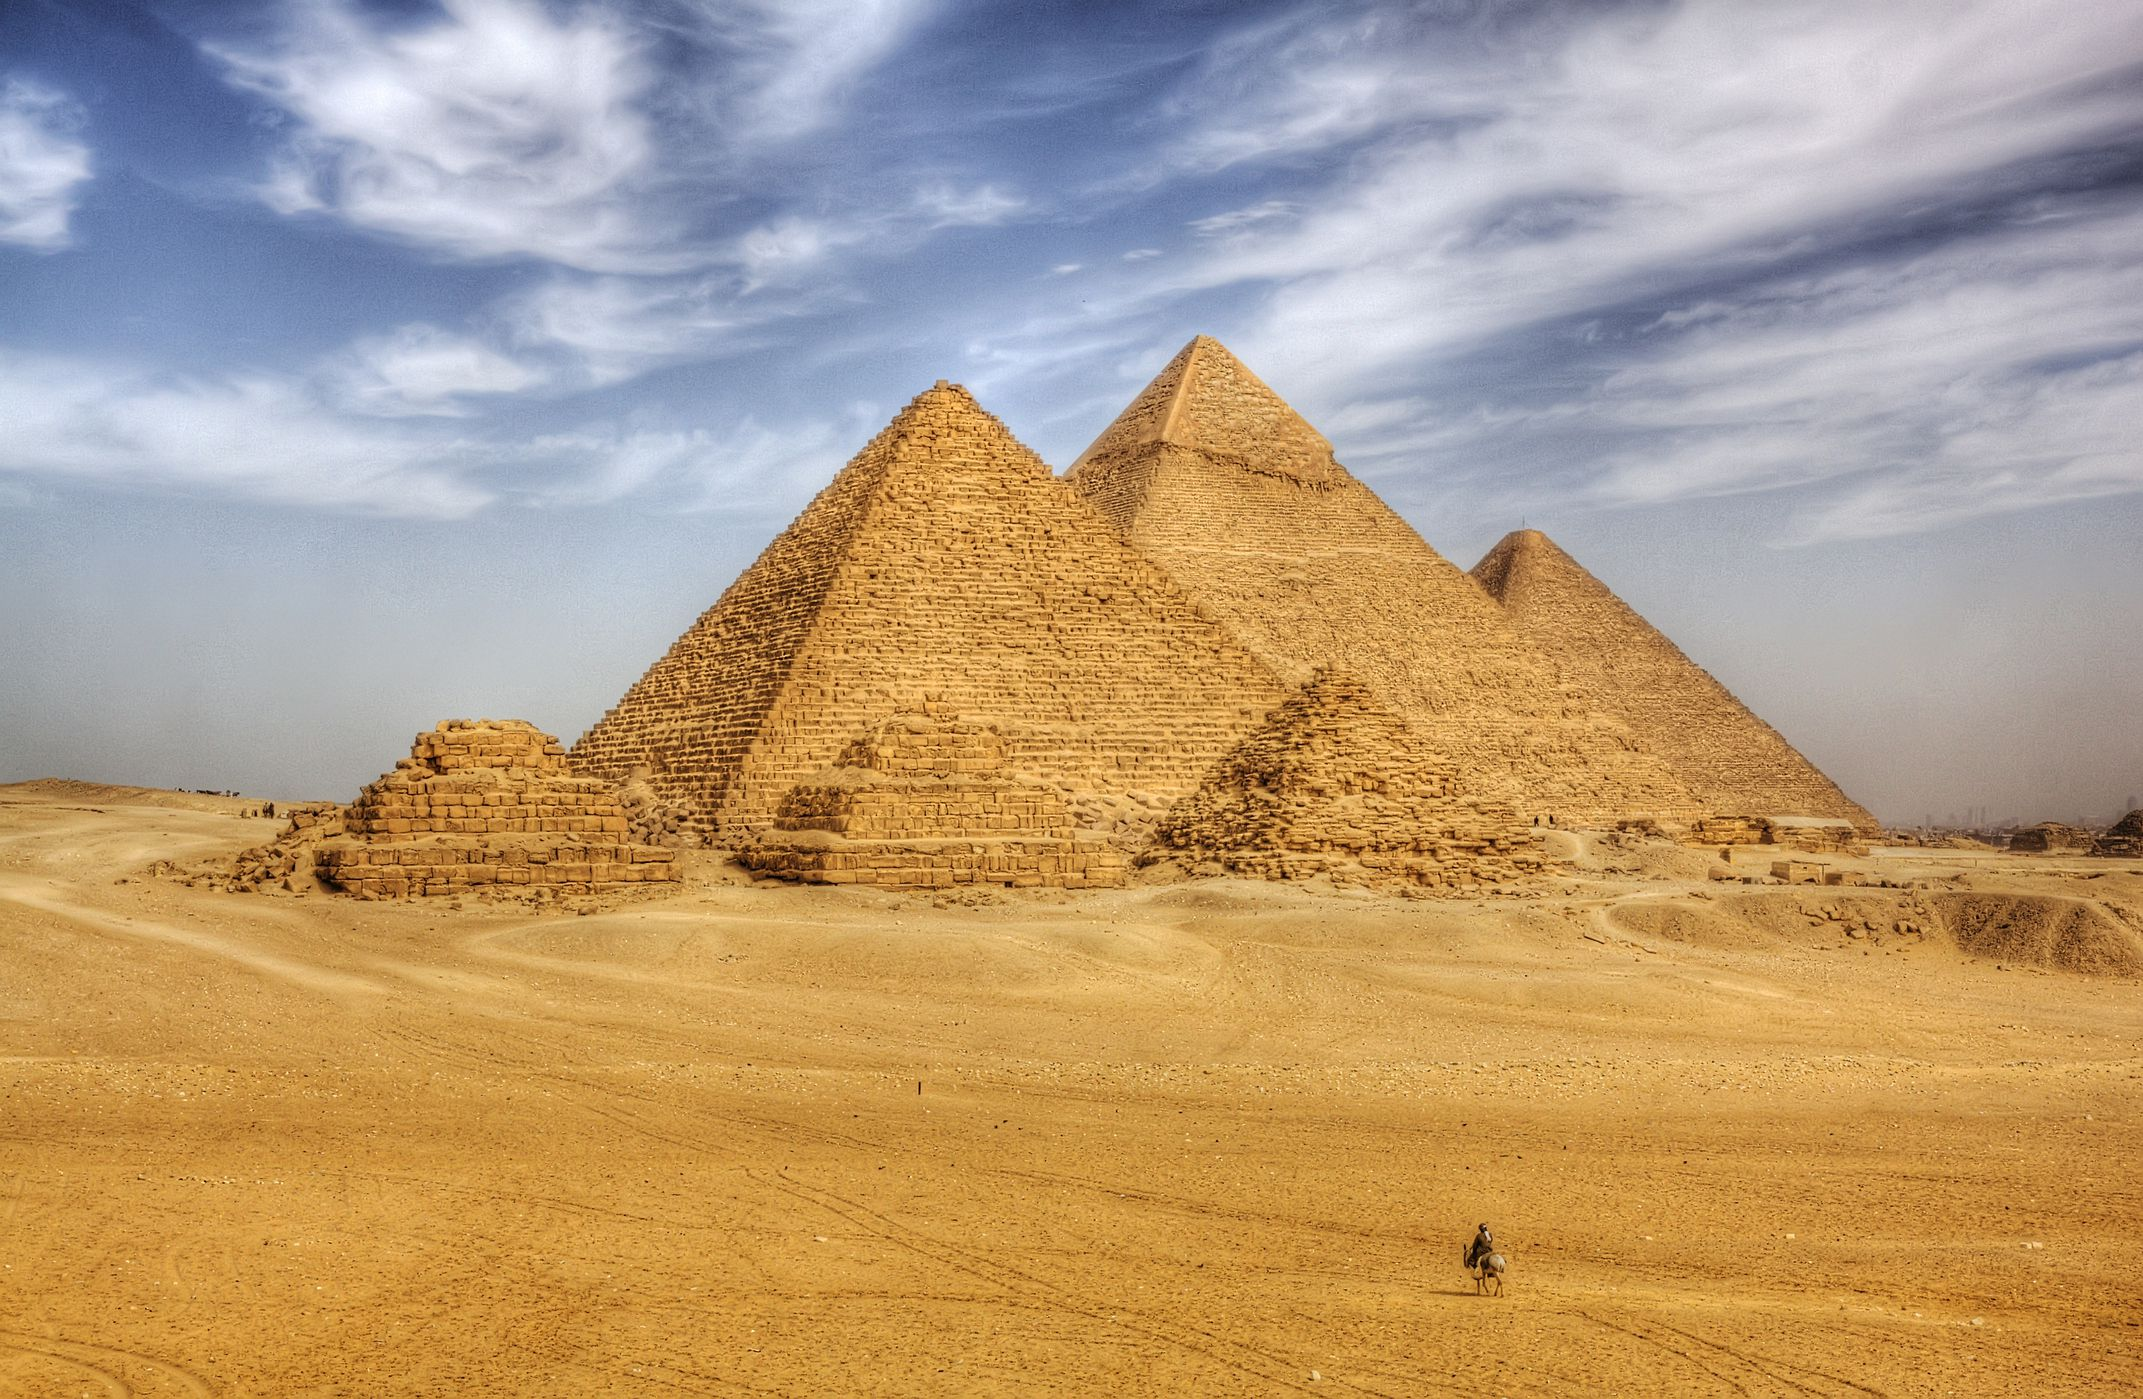 What You Should Know Before Going to Egypt